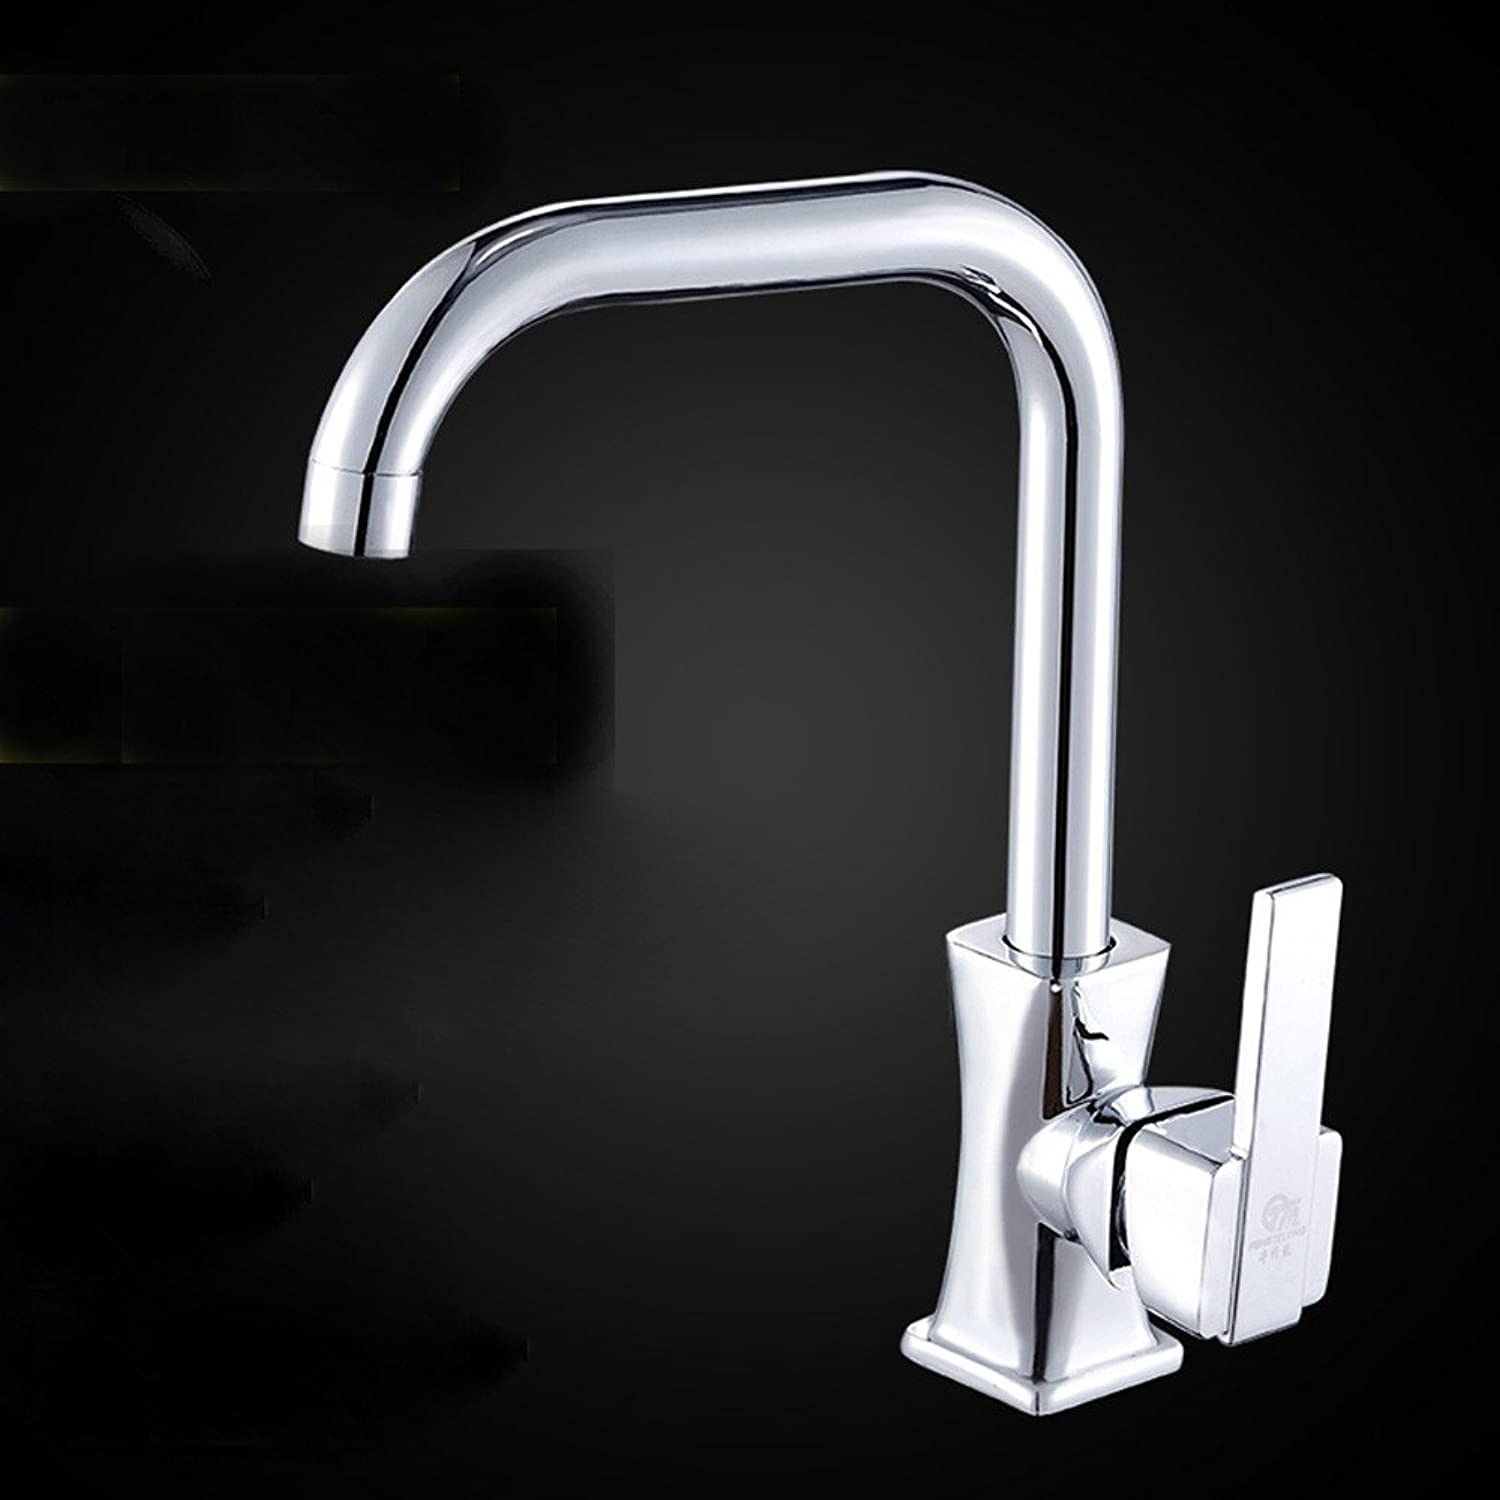 Gyps Faucet Basin Mixer Tap Waterfall Faucet Antique Bathroom Kitchen faucet and cold water tap to wash dishes slot basin basin with two full copper KITCHEN FAUCET Bathroom Tub Lever Faucet